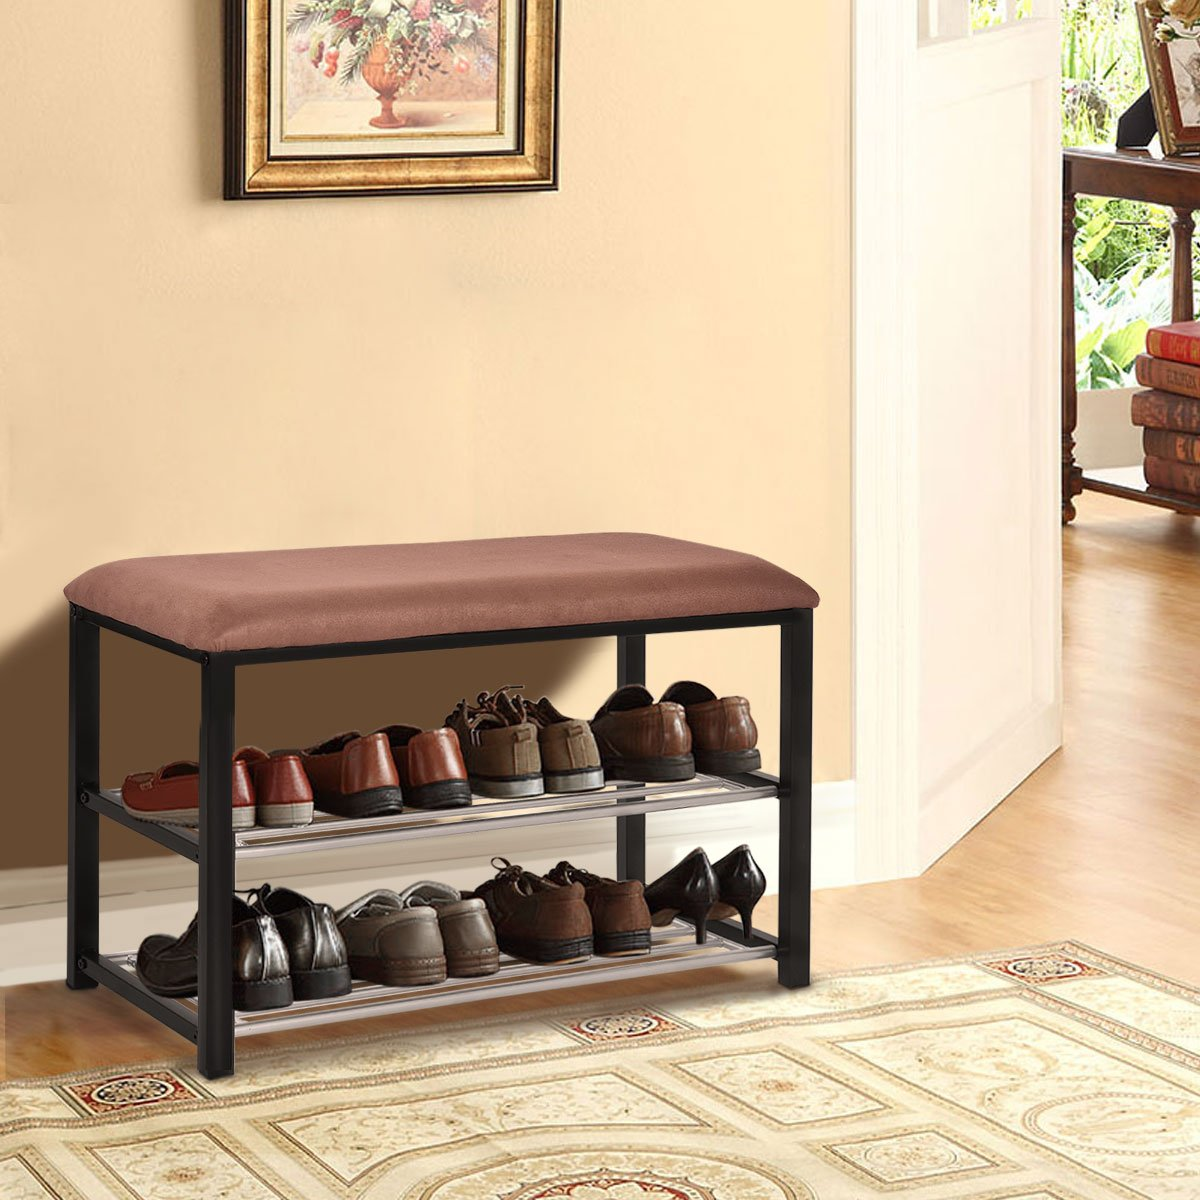 COSTWAY 3 Tier Hallway Bench Shoe Rack Stand Organiser With Upholstered Seat (Brown)